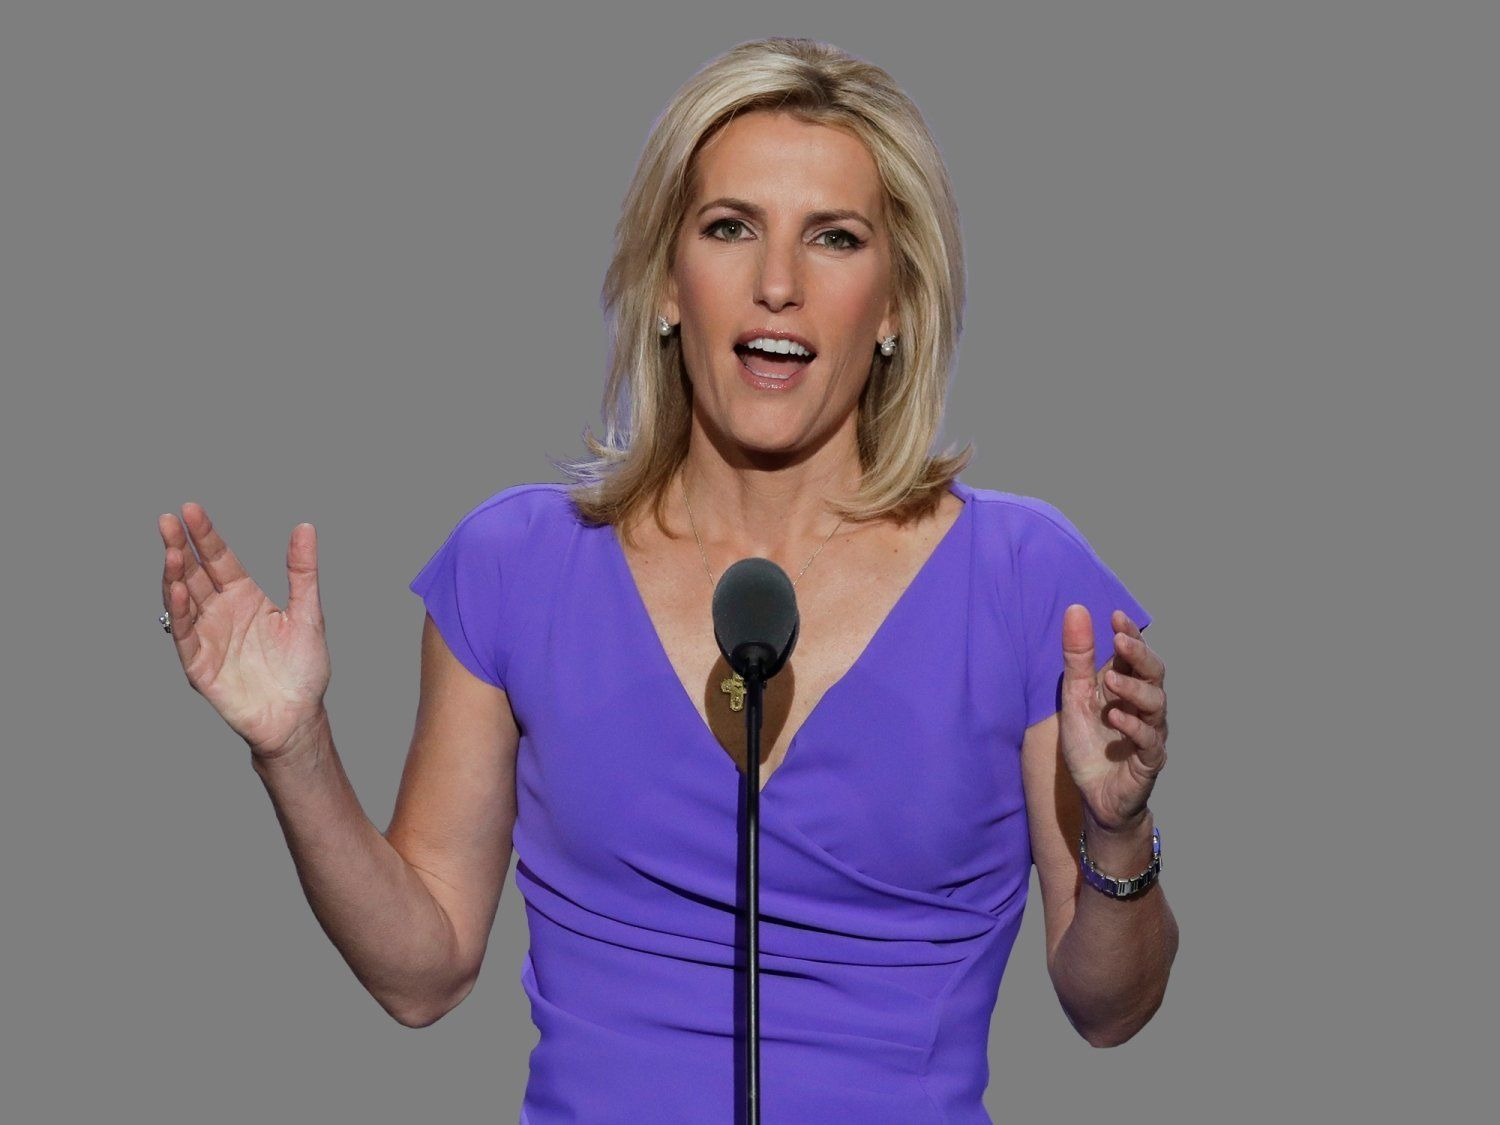 Laura Ingraham headshot, talk show host, graphic element on gray